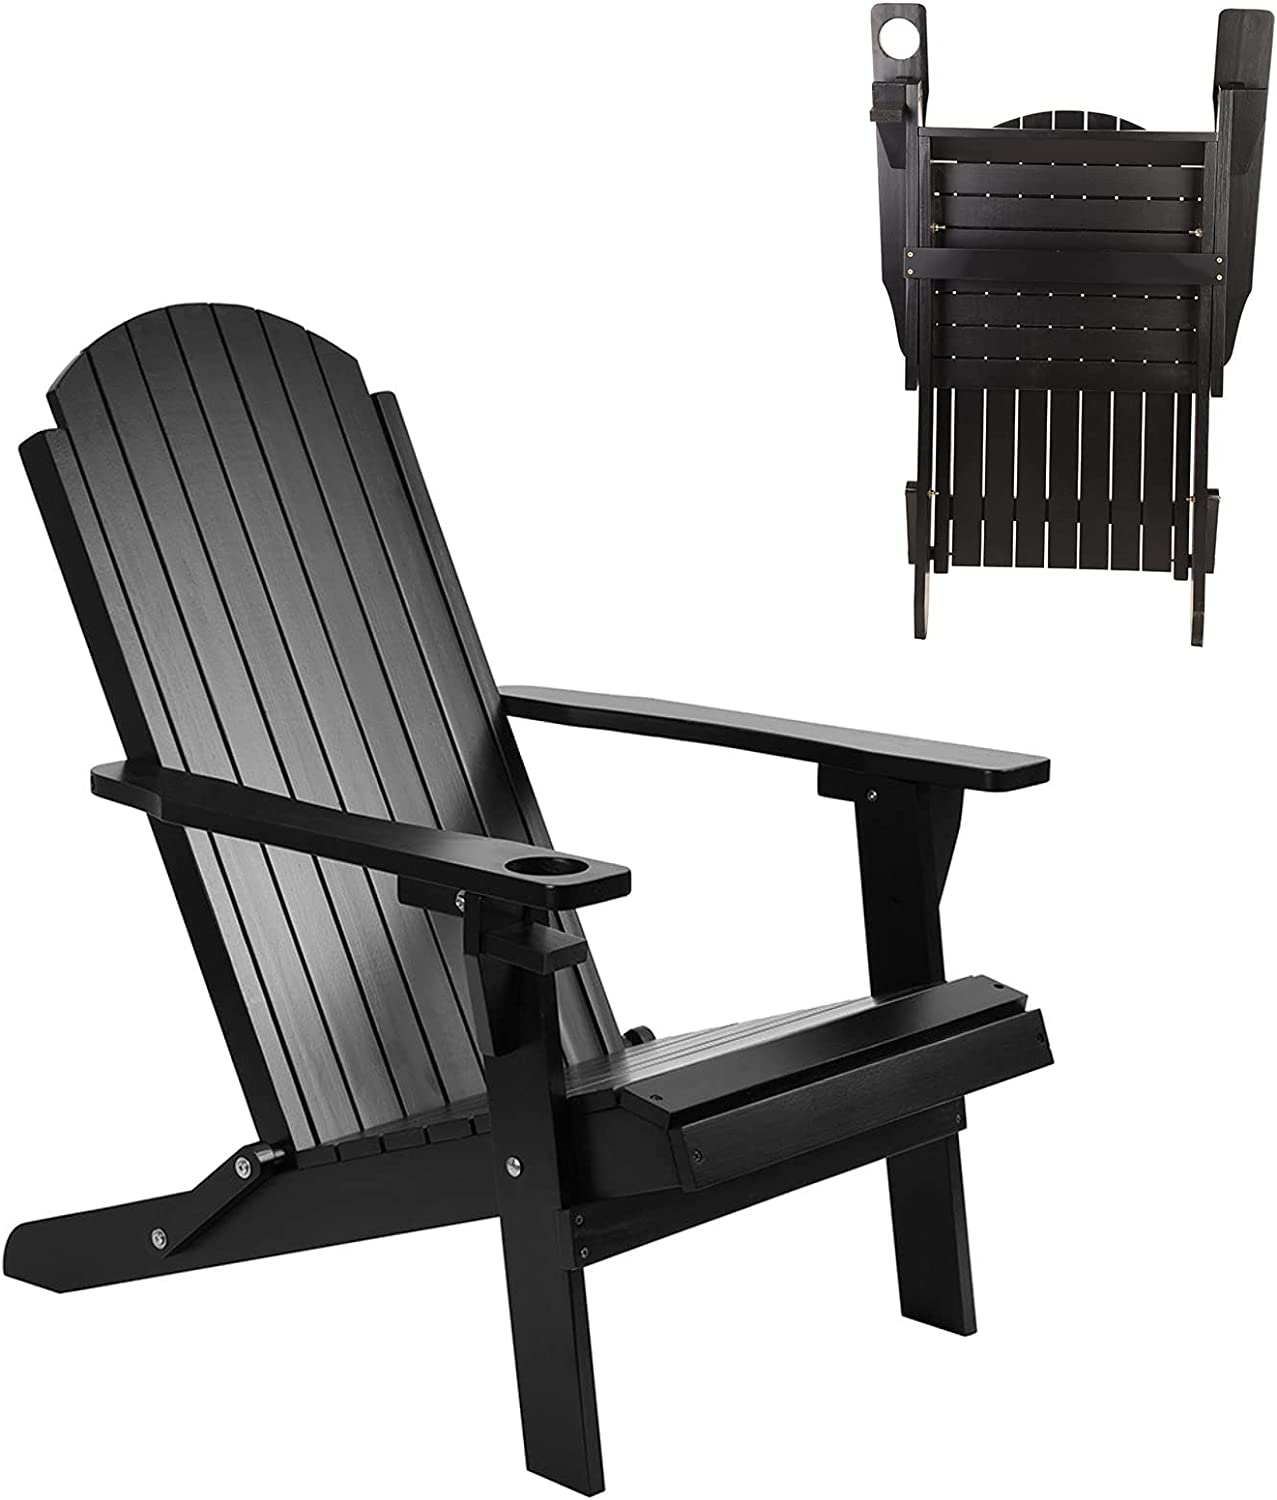 Outdoor Cheap bargain Adirondack Colorado Springs Mall Chair Weather Wood Resistant Solid